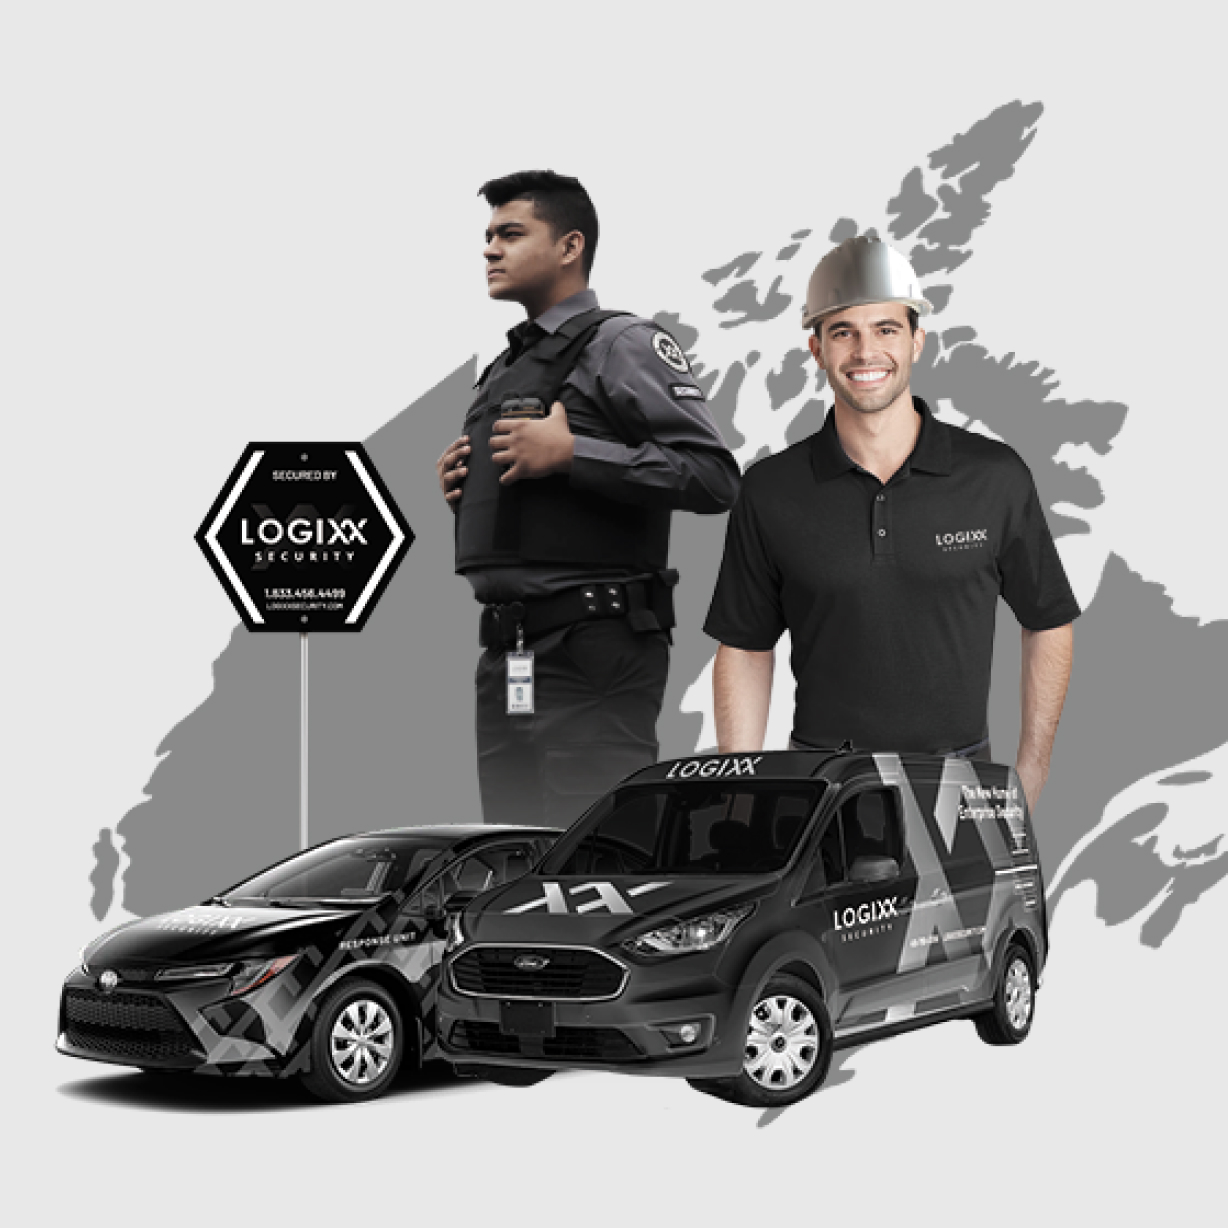 Logixx is Canada's Security Leader